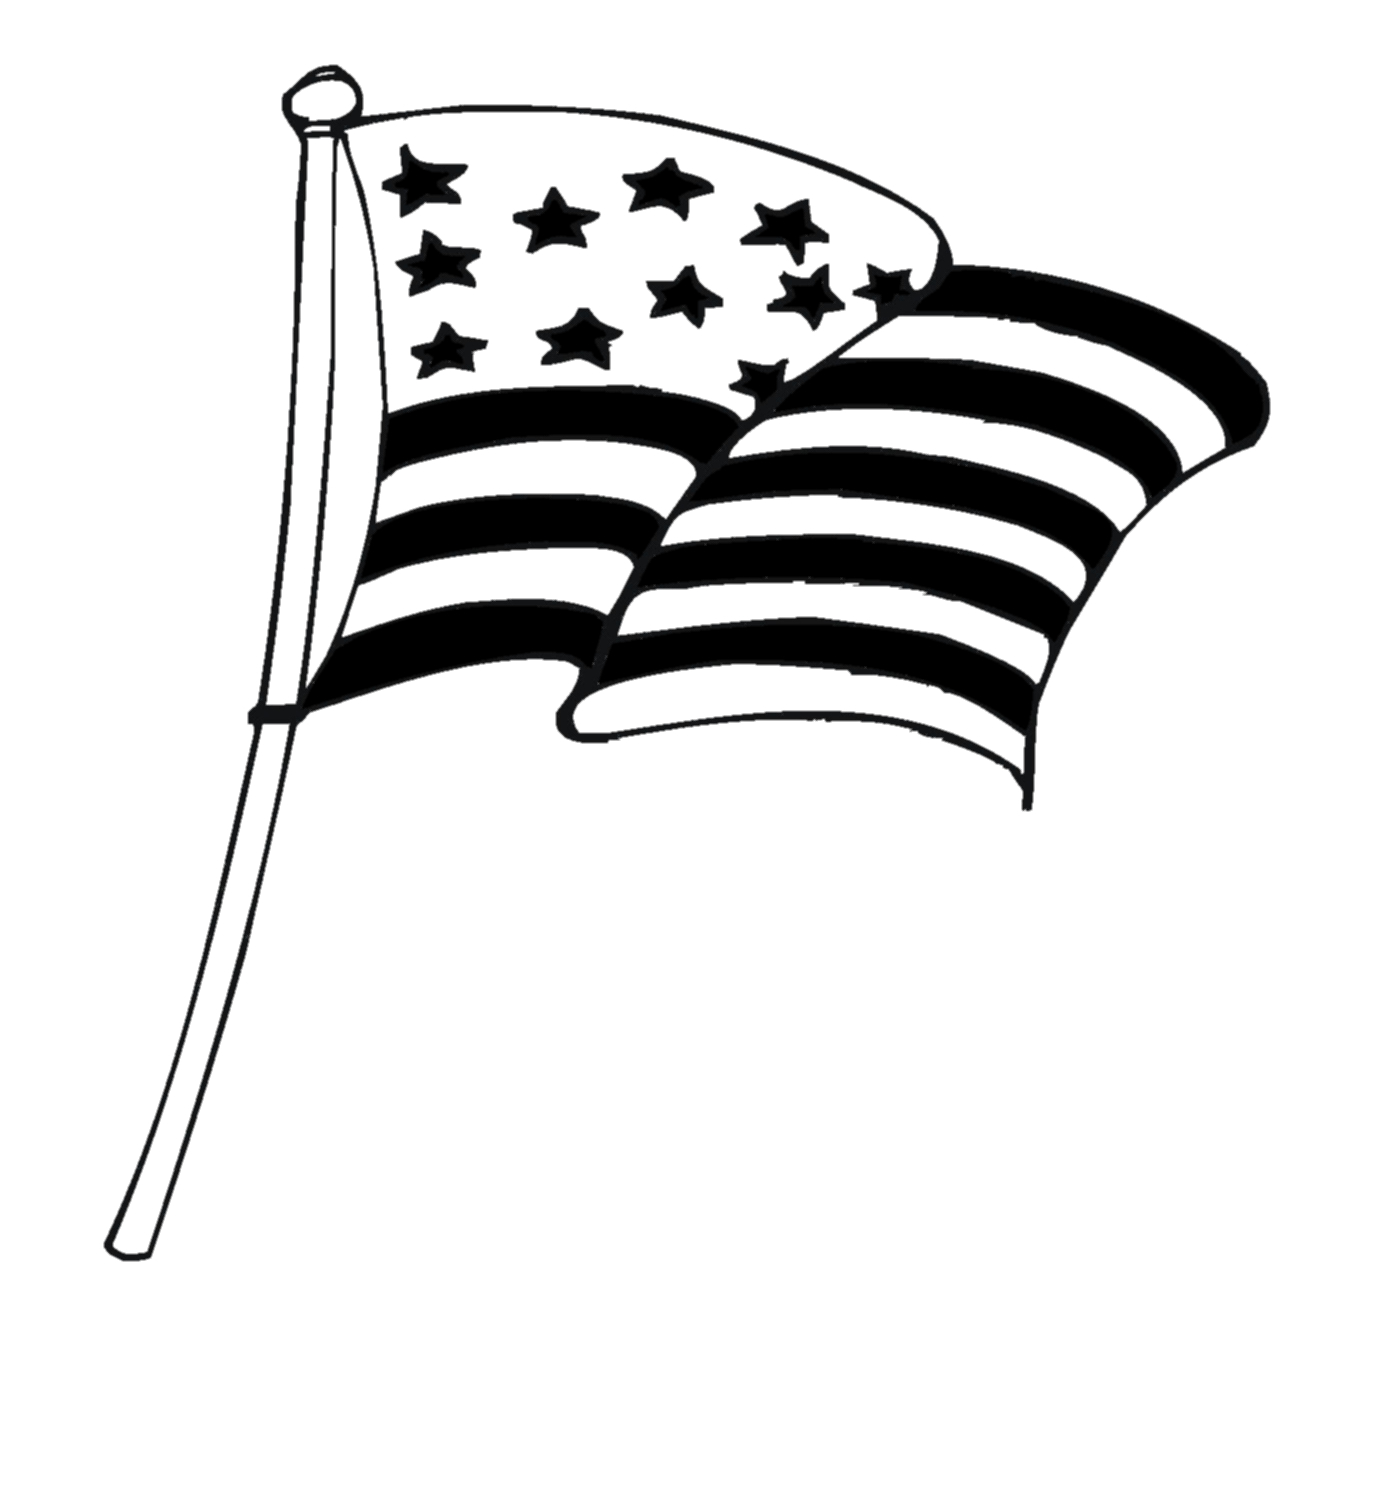 1375x1500 Simple Blank Flag Design Free Clip Art